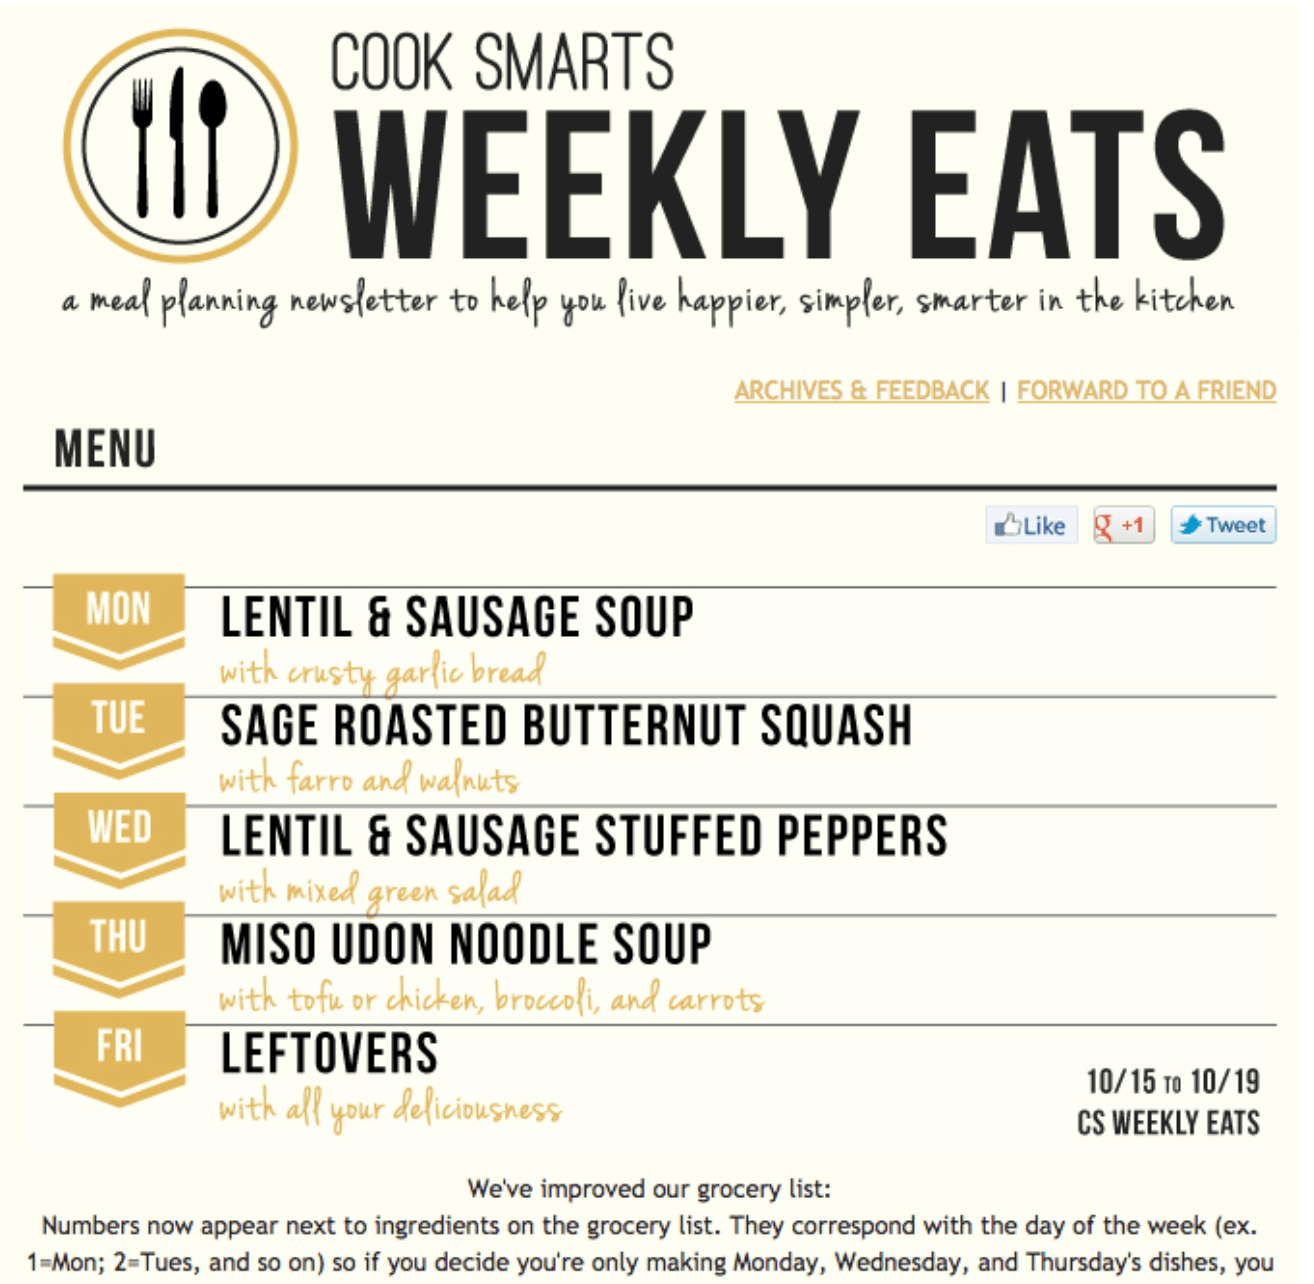 Cook smarts email newsletter